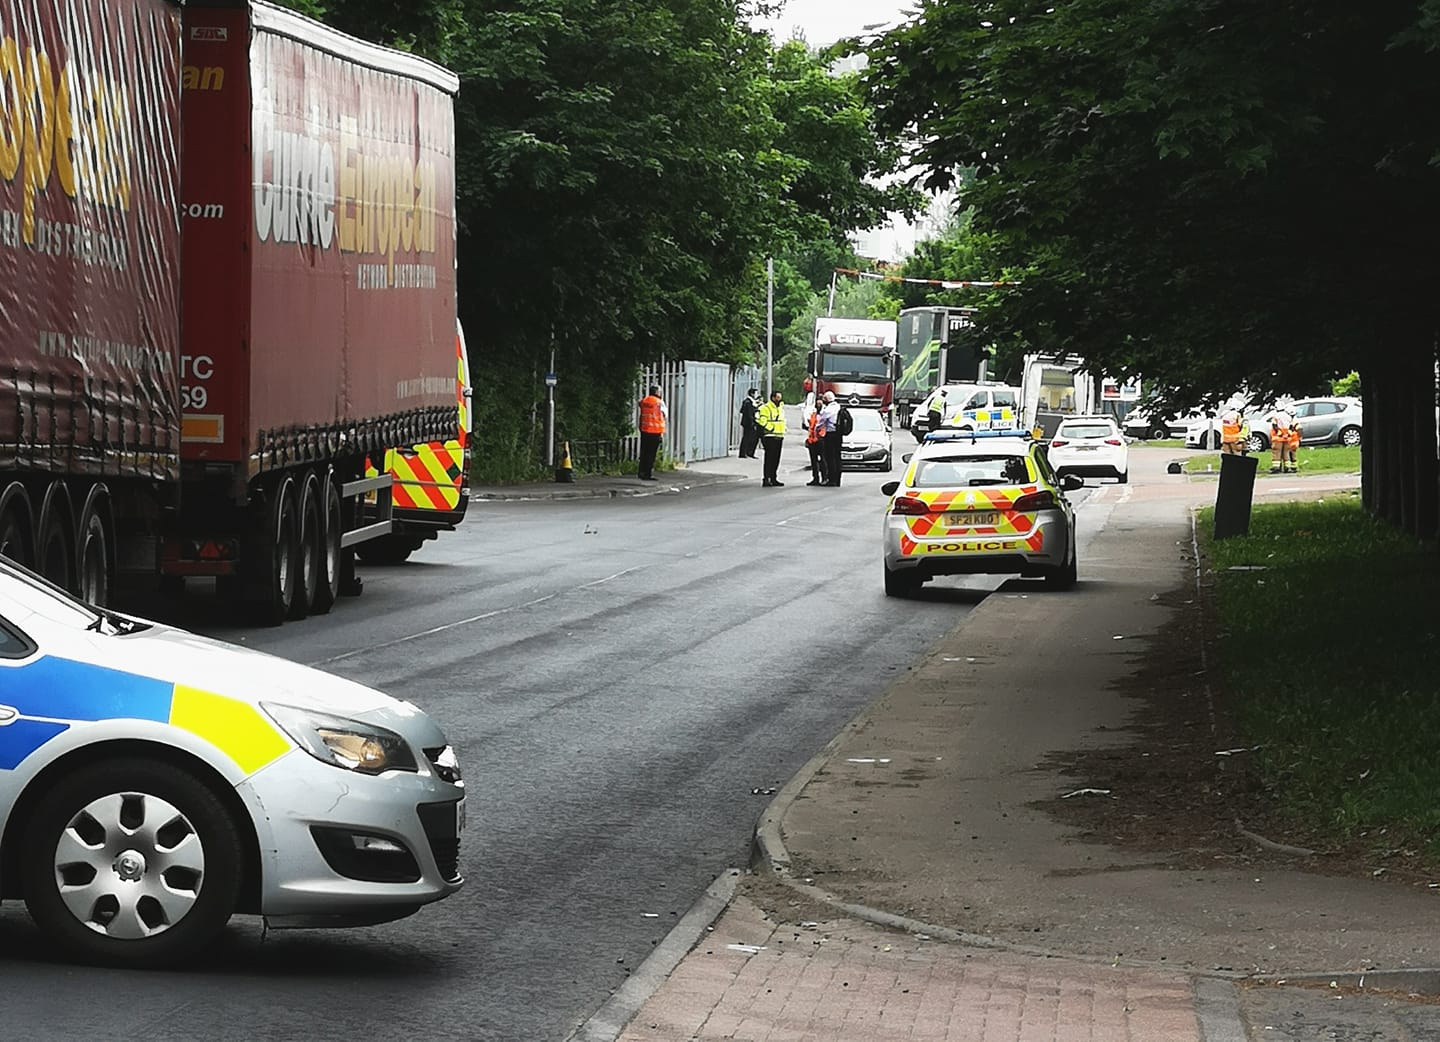 Cambuslang Road: Parcelforce depot locked down by police after suspicious parcel found